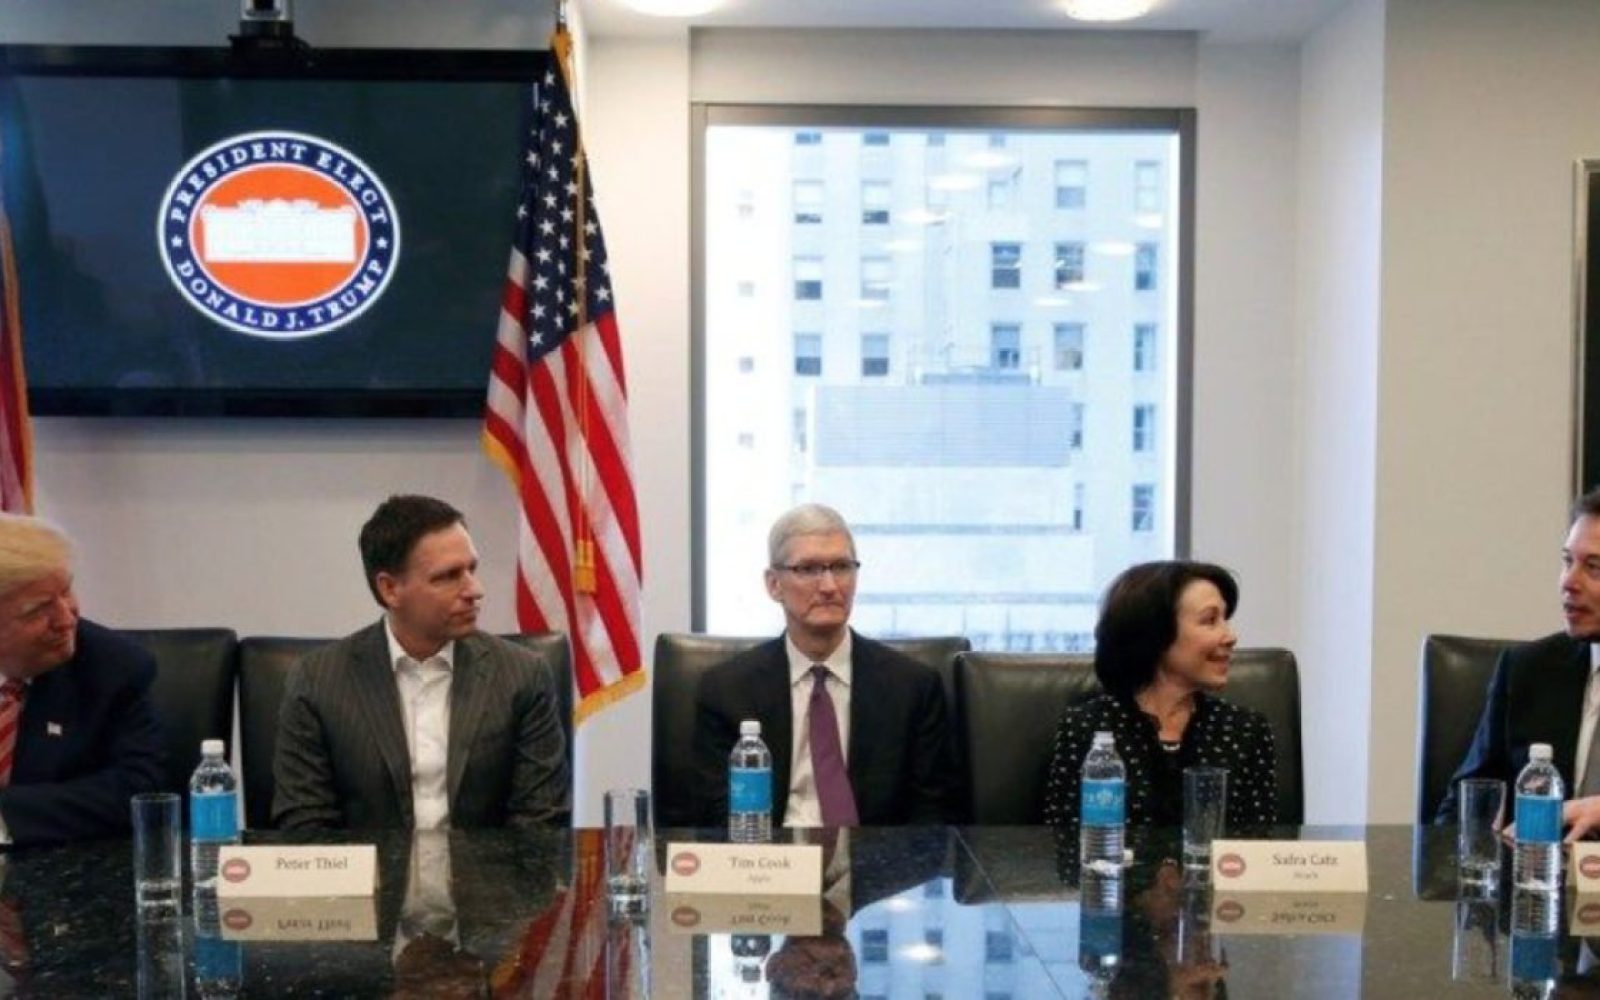 This week's top stories: Elon Musk meets w/ Trump & joins advisory forum, Tesla SuperChargers introduce idle fee, USA installs record amount of solar & more